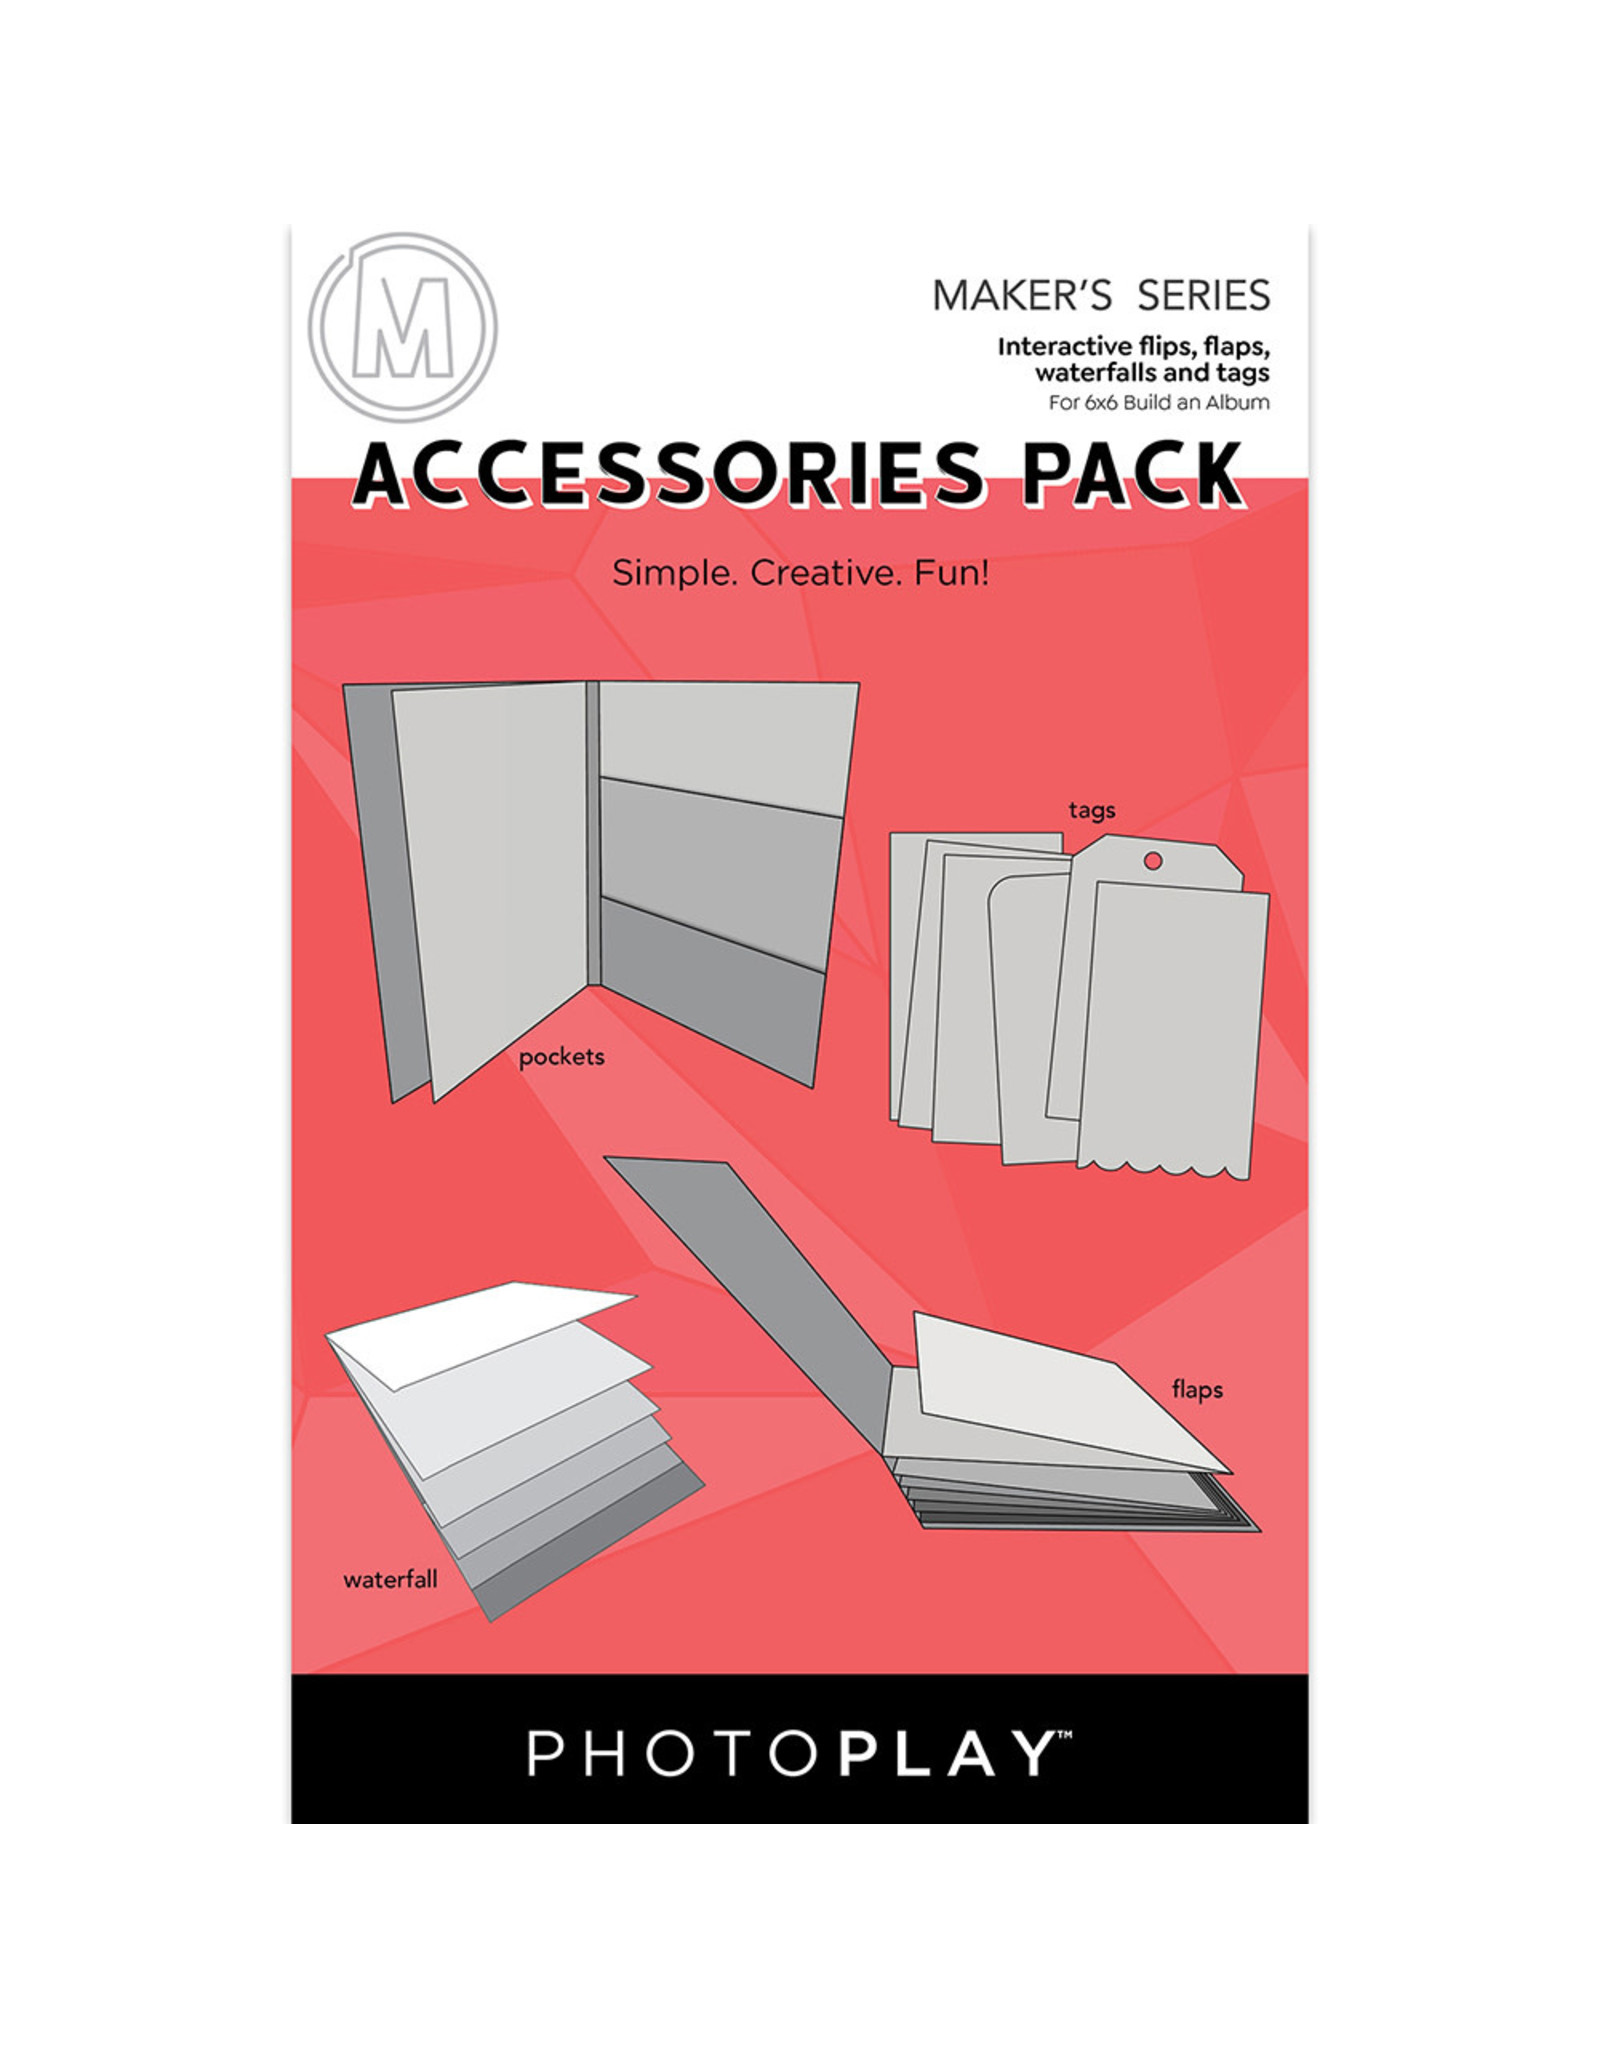 PHOTOPLAY Build an Album Accessories Pack